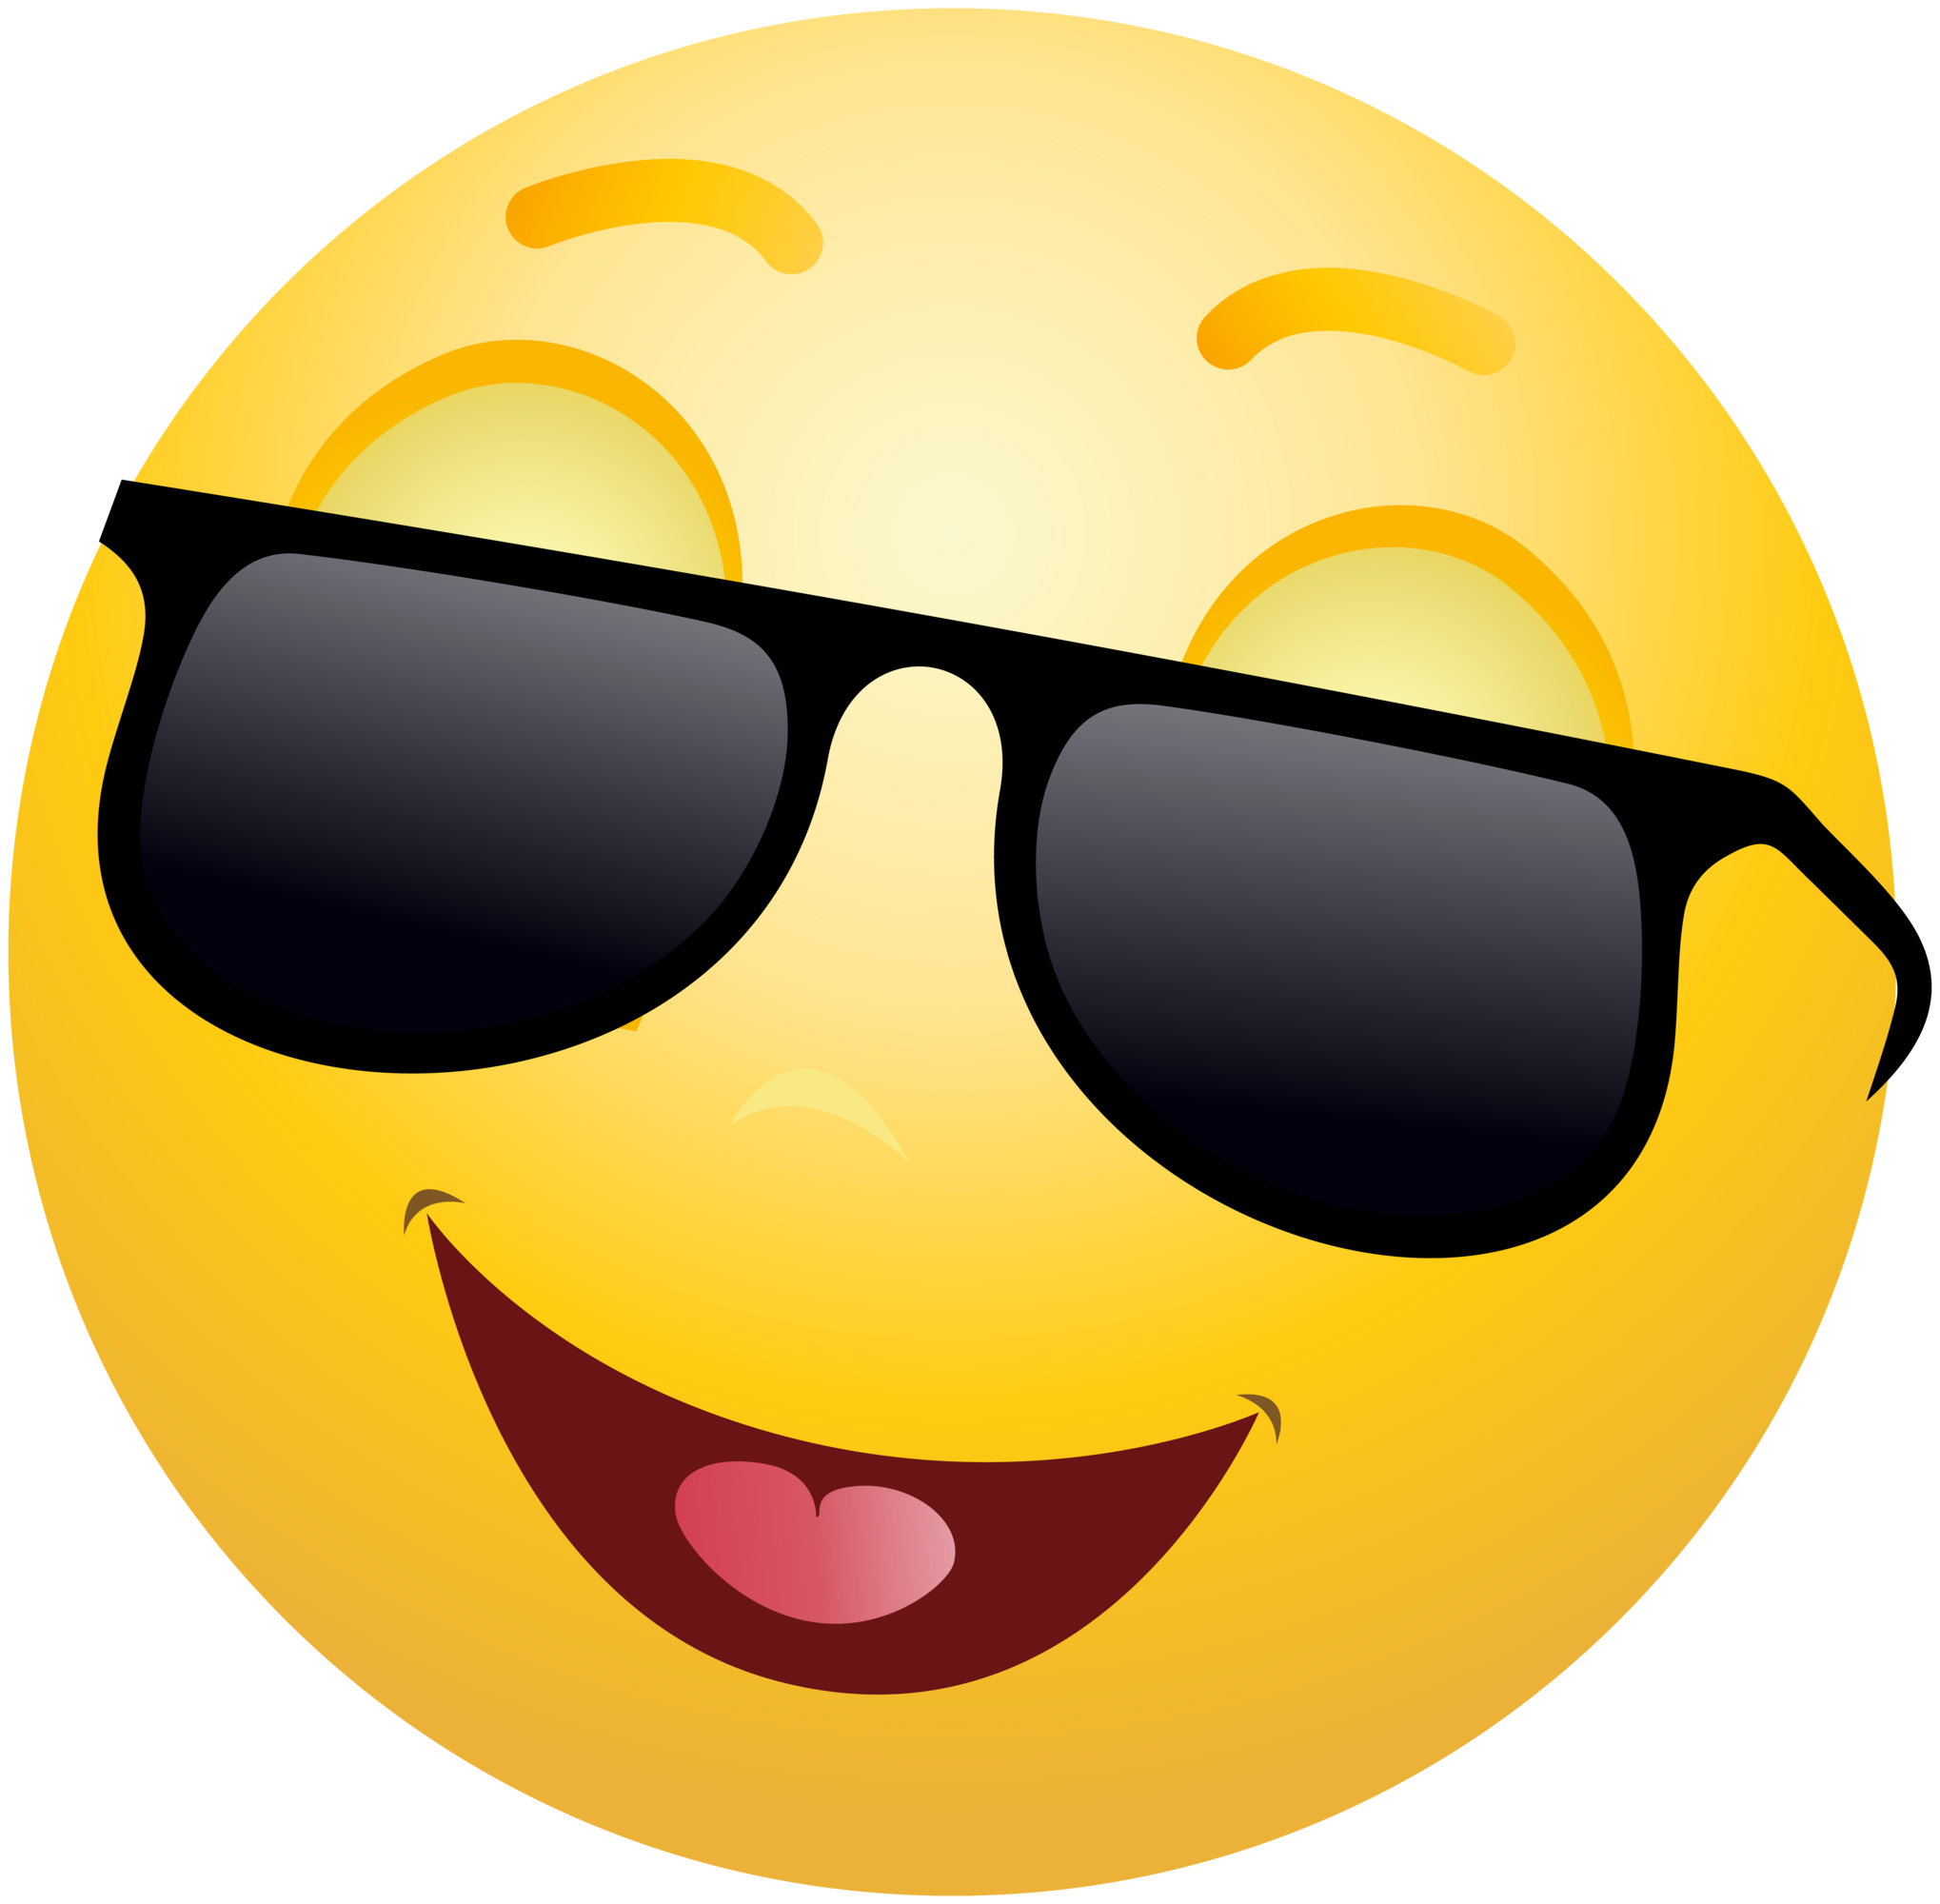 smiling emoticon emoji with sunglasses clipart info rh clipart info sunglasses clip art to print free sunglasses clipart